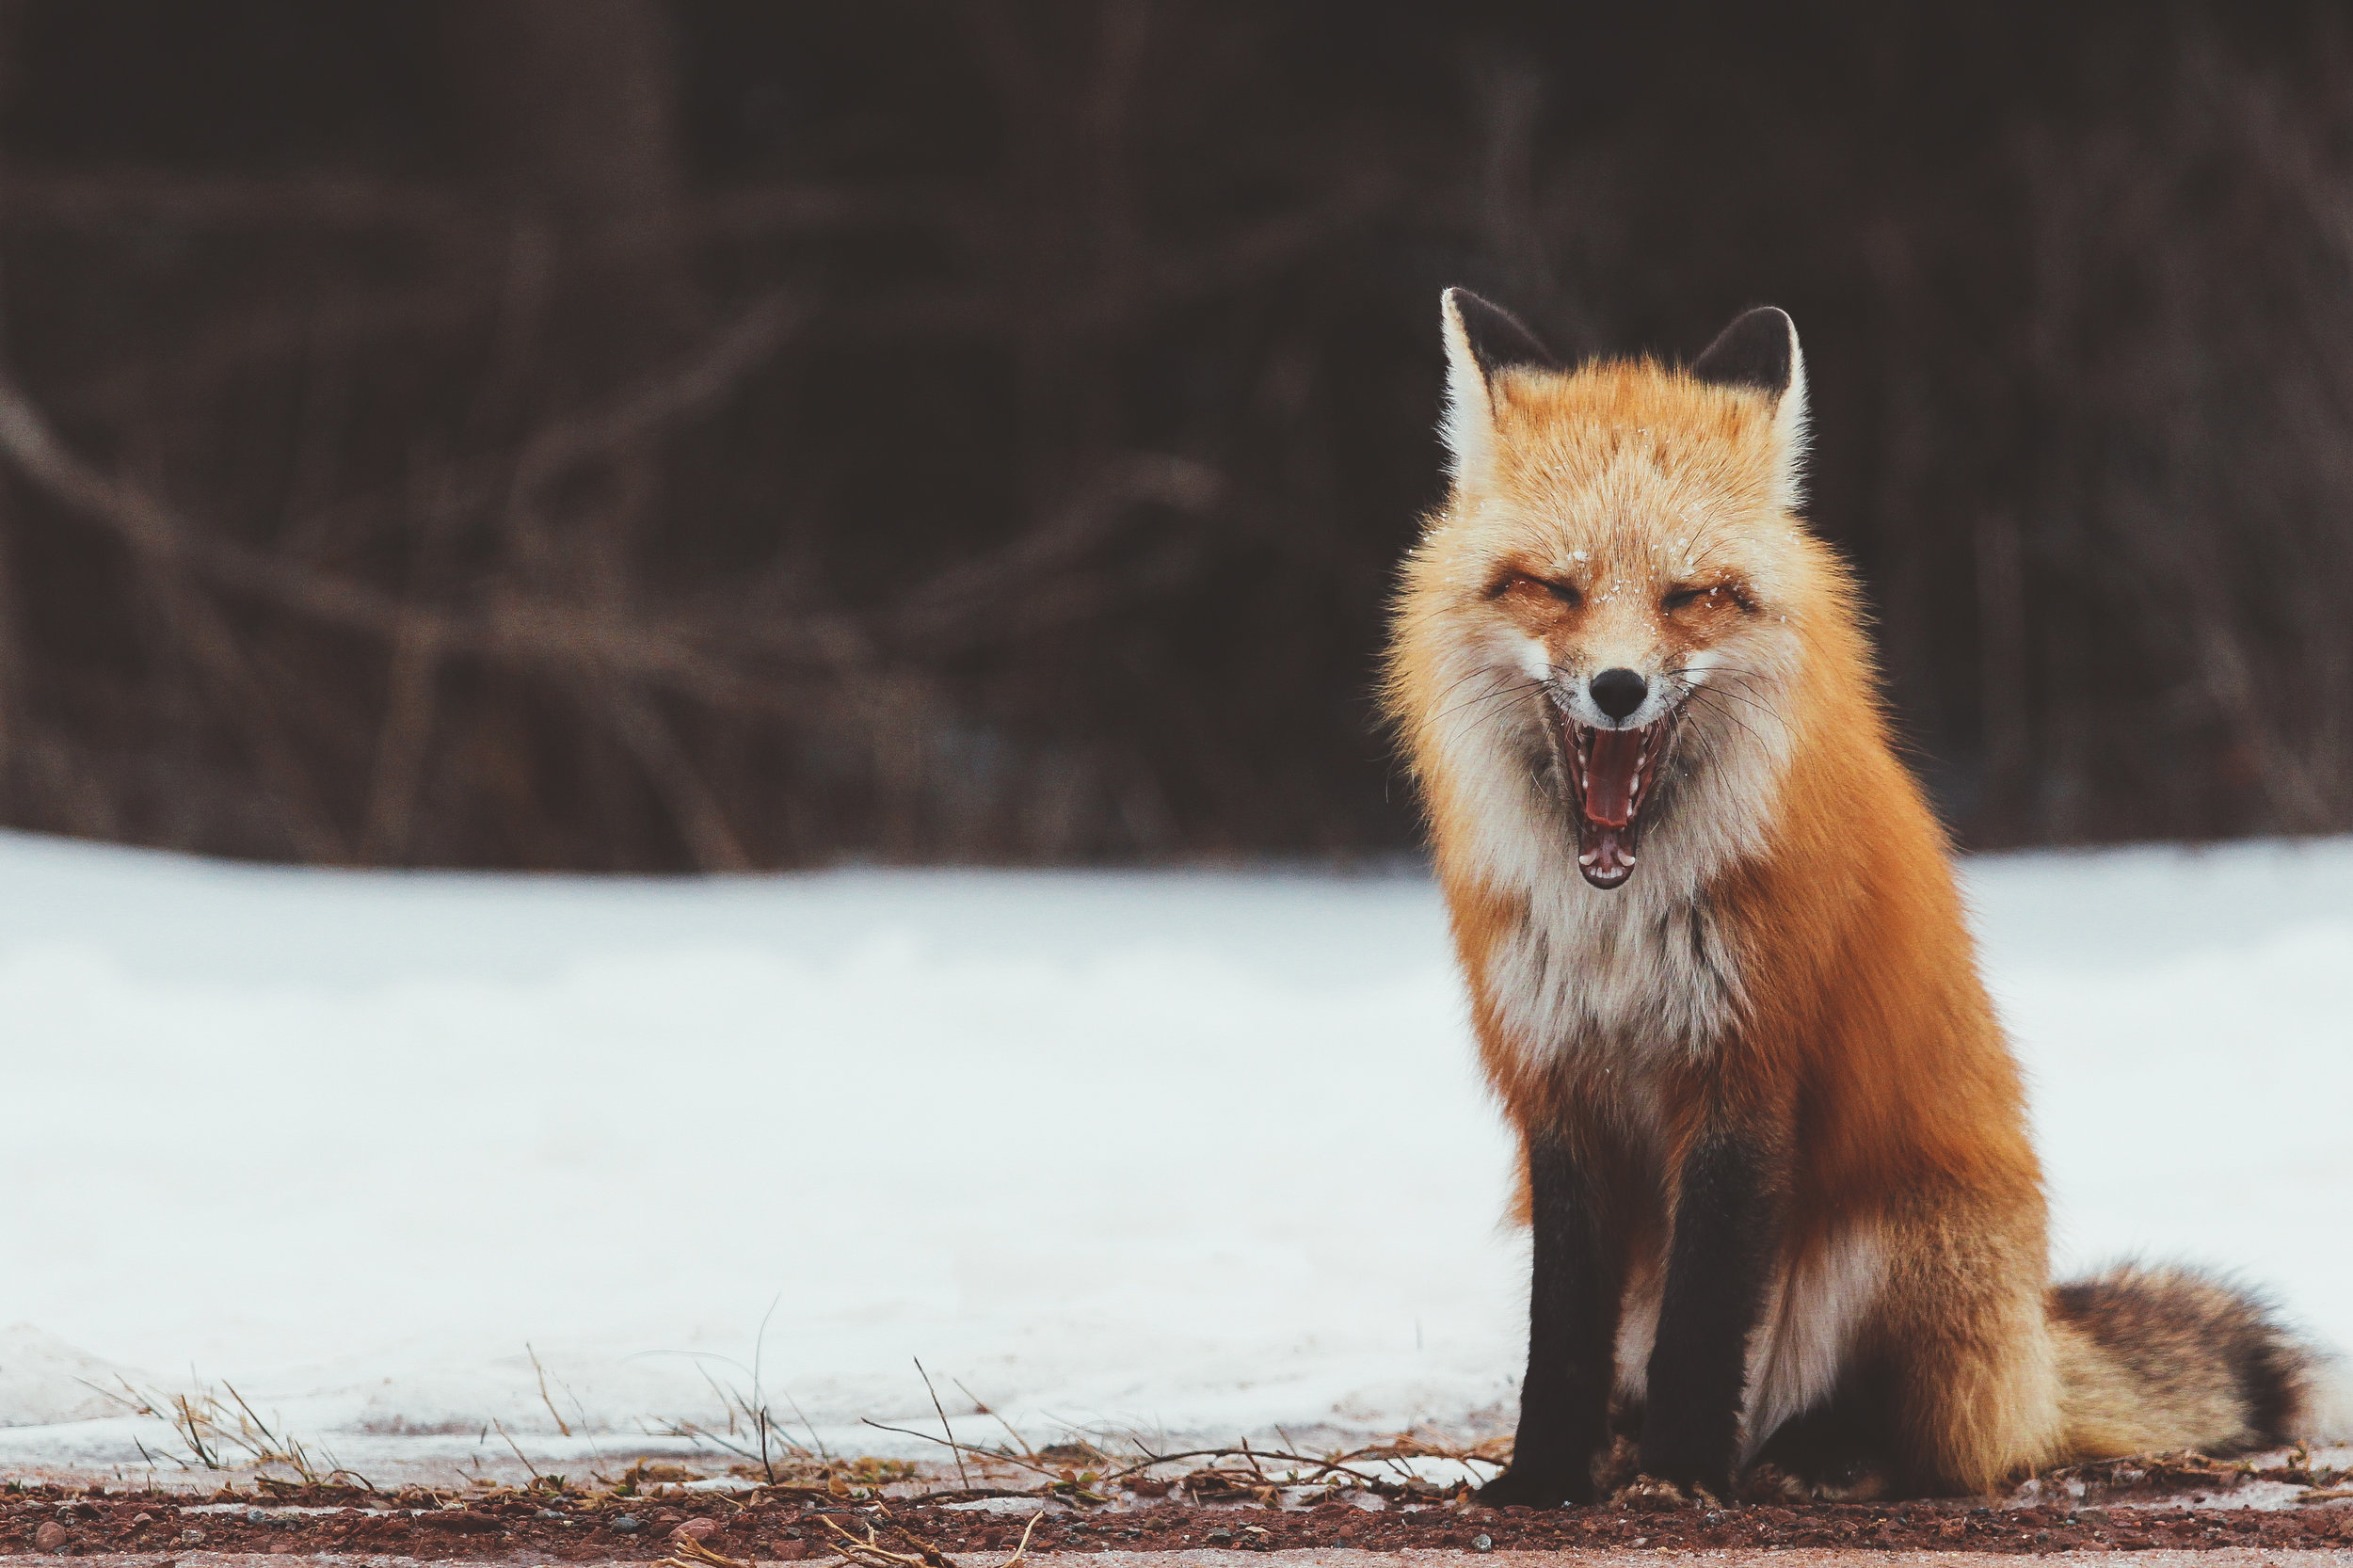 Red Fox, laughing, smiling? PEI Winter, 2015.